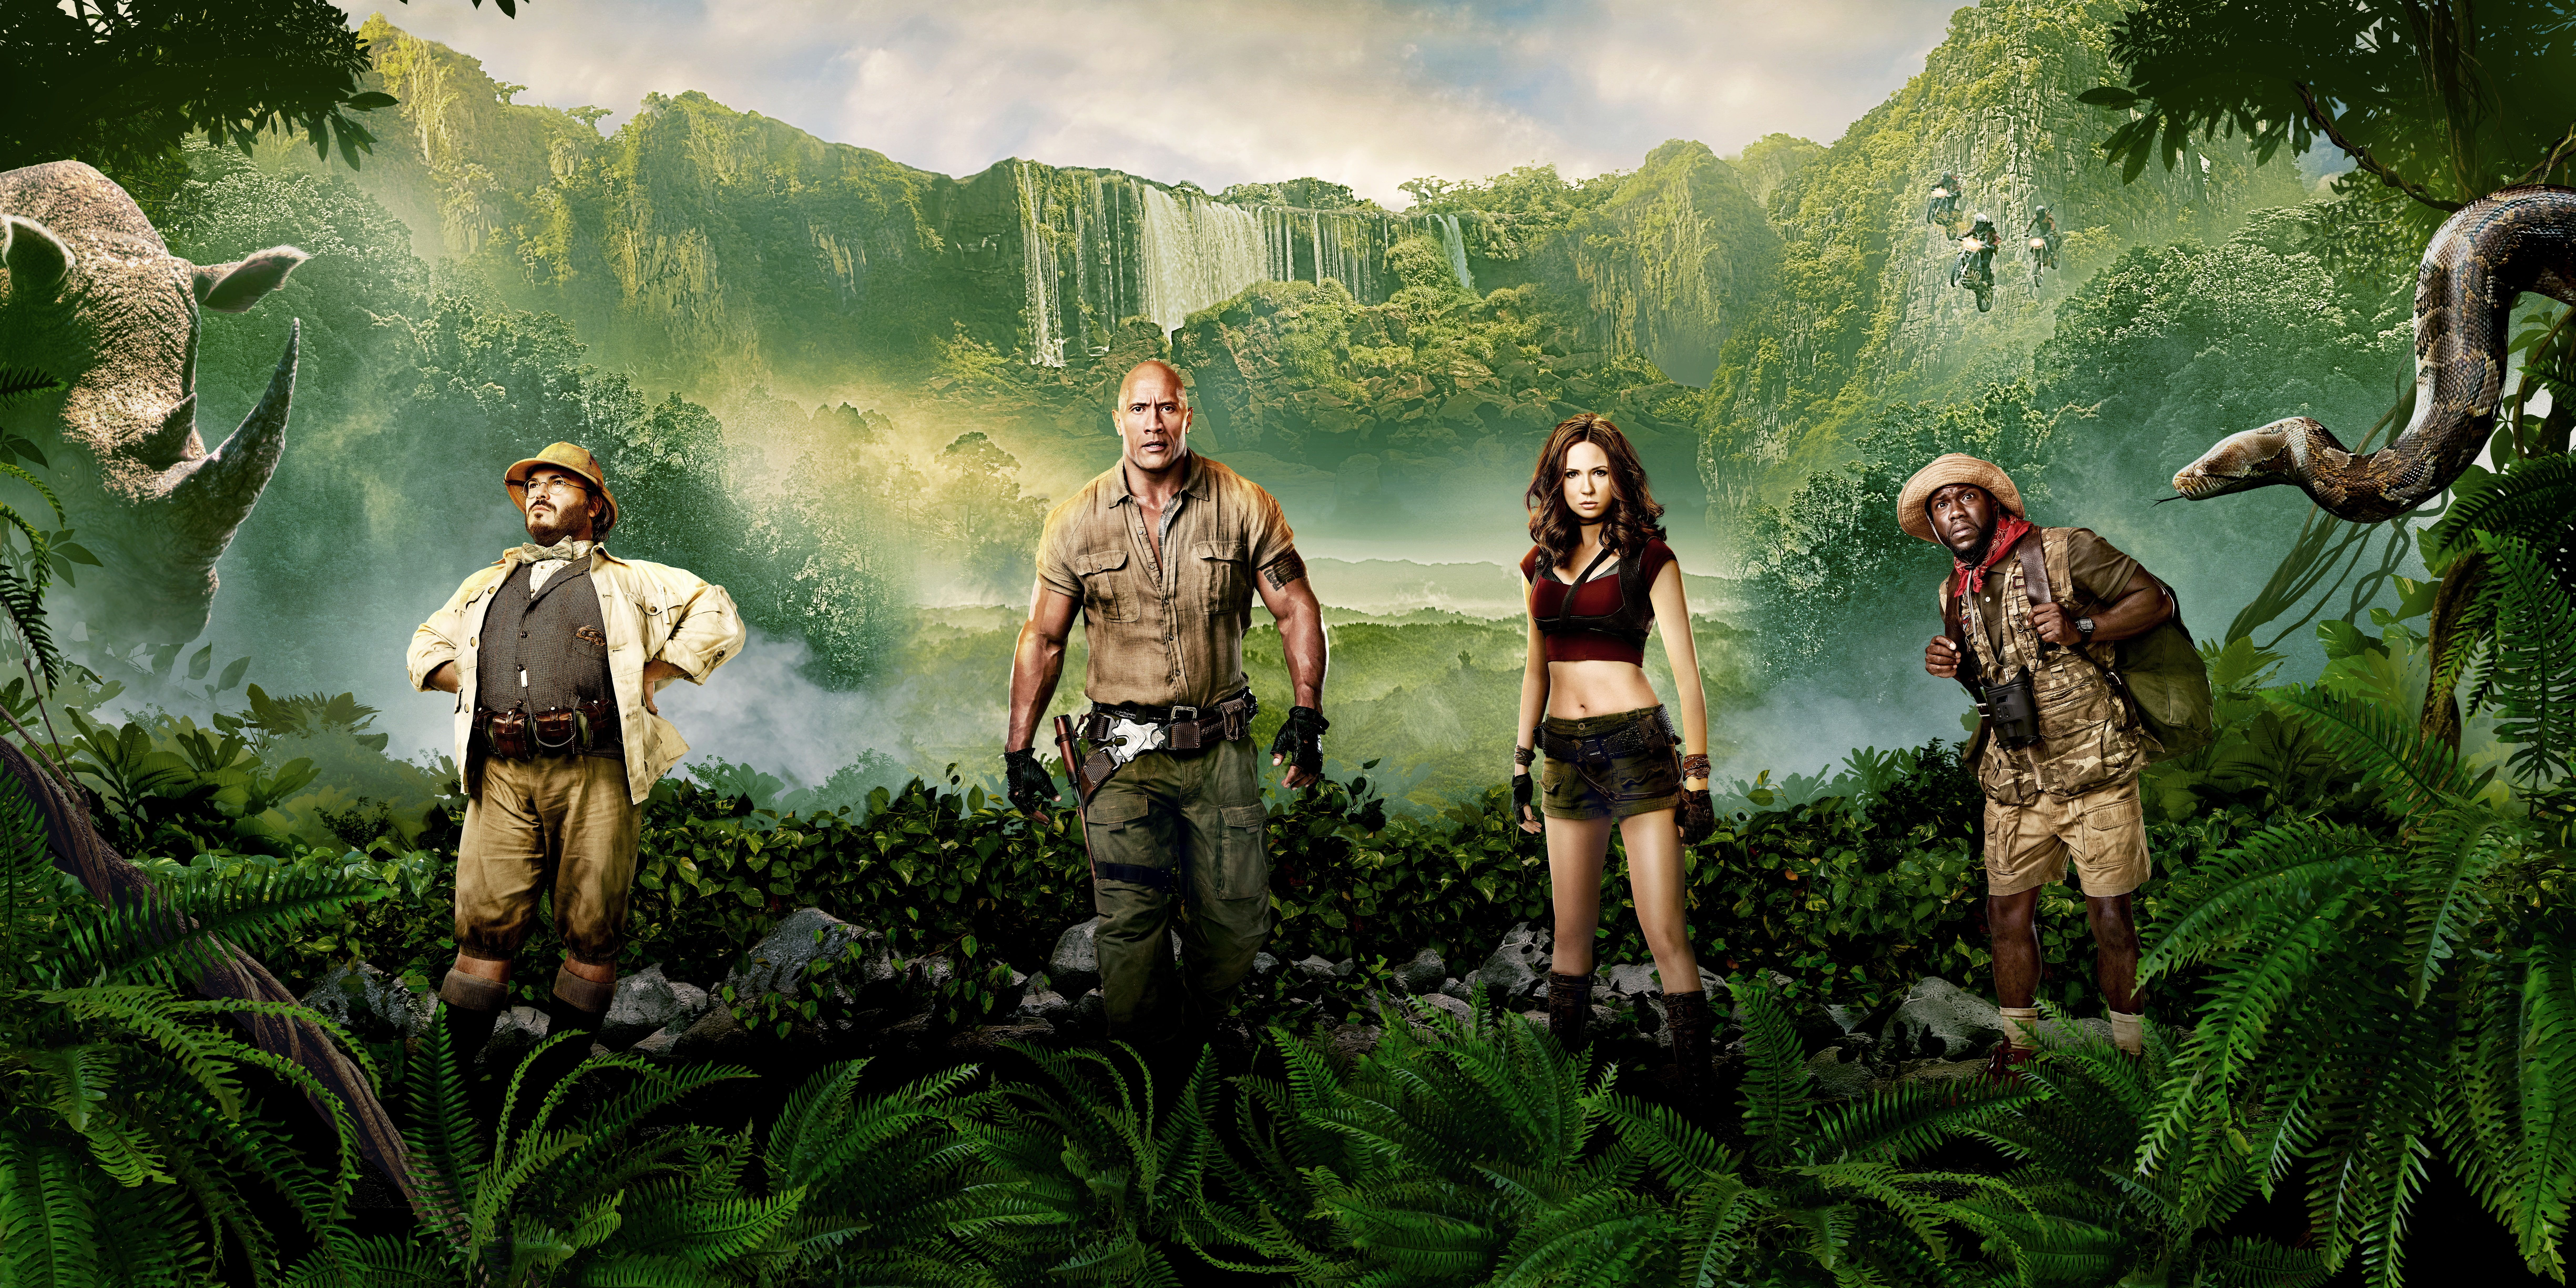 Girl Action Jungle Fantasy Beautiful Wood The Snake Men Female Family Year Waterfall Woman Dwayn Welcome To The Jungle Movie Wallpapers Hd Movies